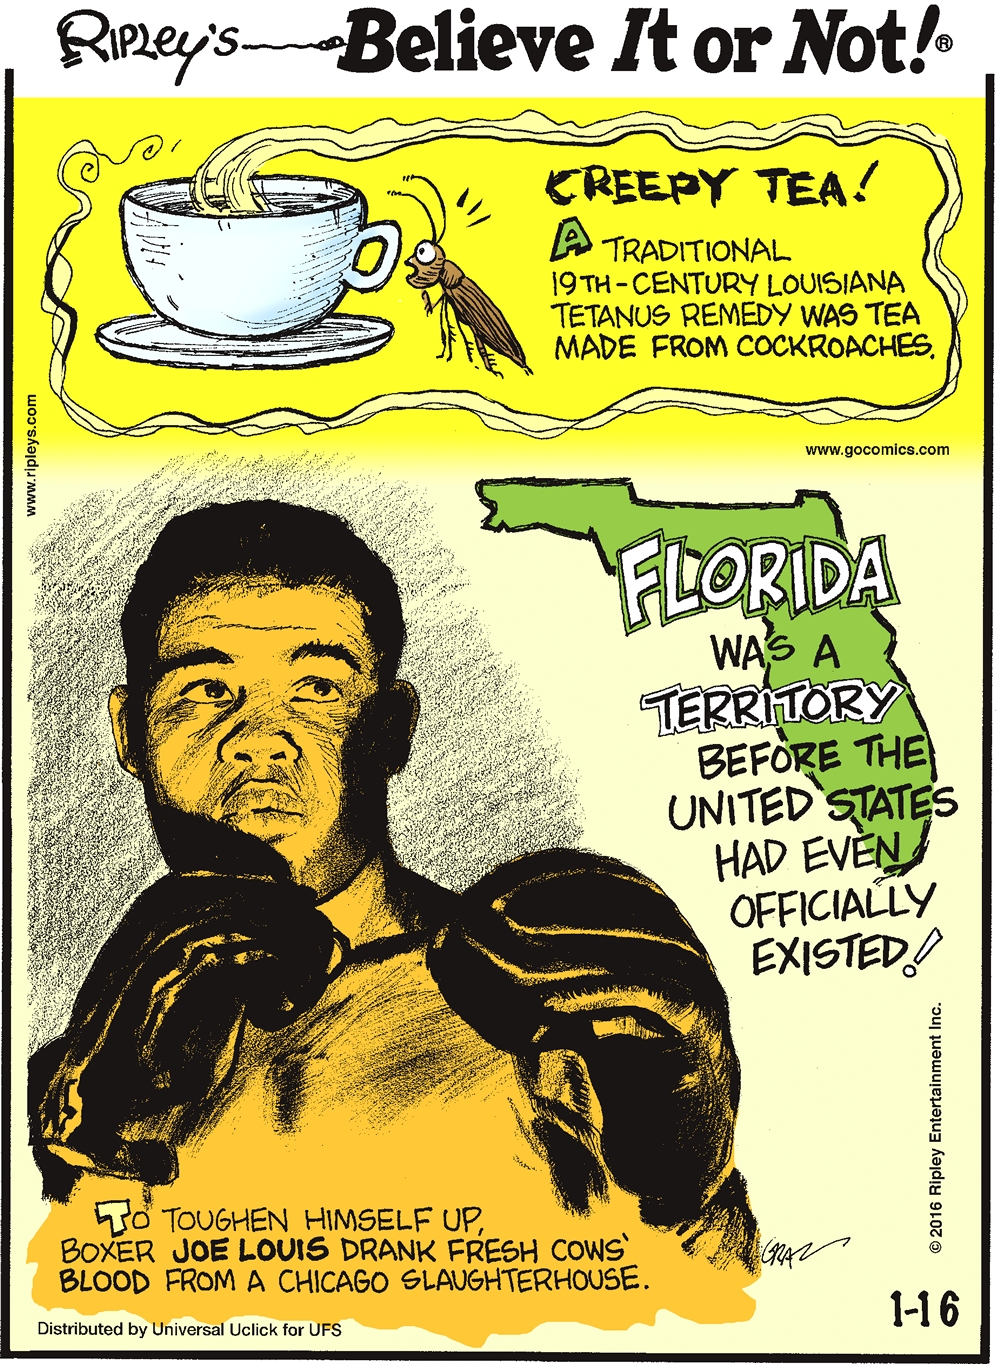 Creepy tea! A traditional 19th-century Louisiana tetanus remedy was tea made from cockroaches. -------------------- Florida was a territory before the United States had even officially existed! -------------------- To toughen himself up, boxer Joe Louis drank fresh cows' blood from a Chicago slaughterhouse.